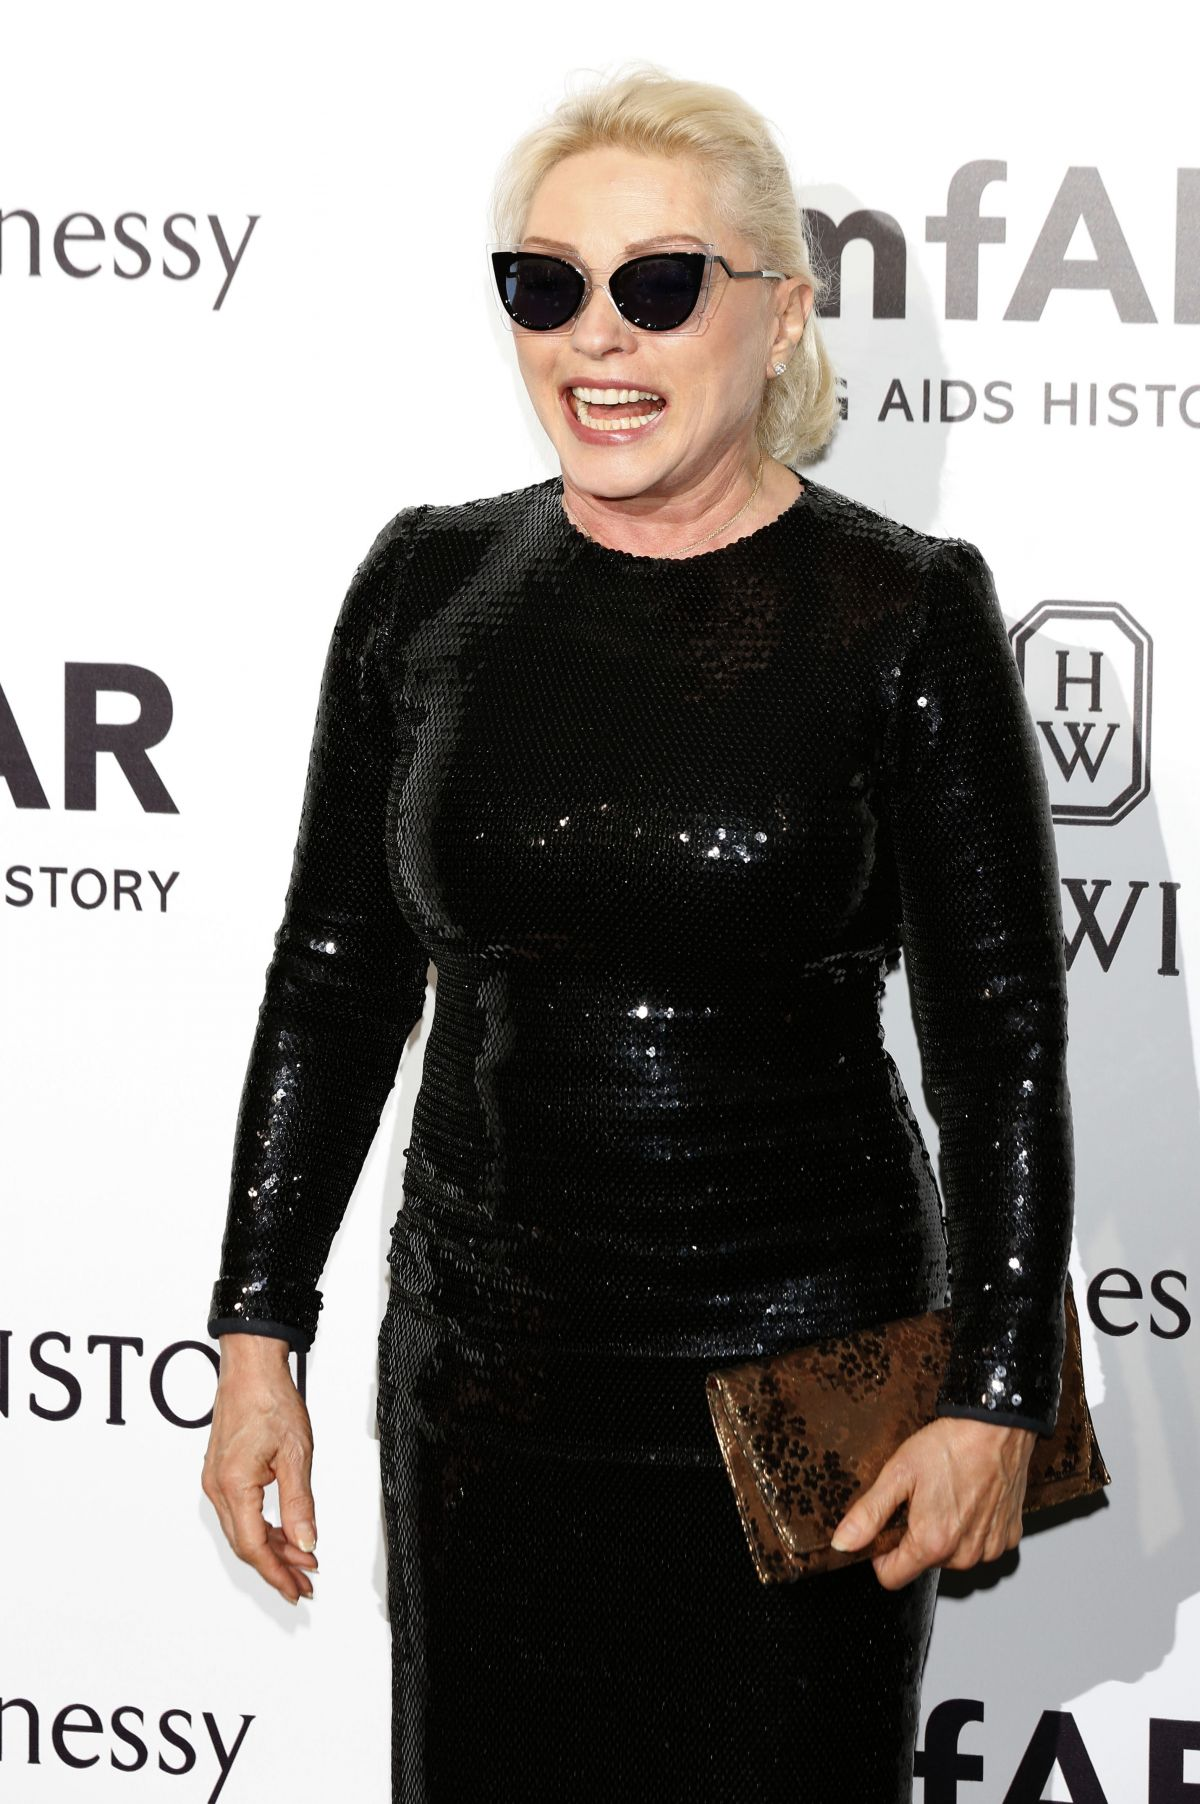 DEBBIE HARRY at amfAR Gala in Milan 09/26/2015